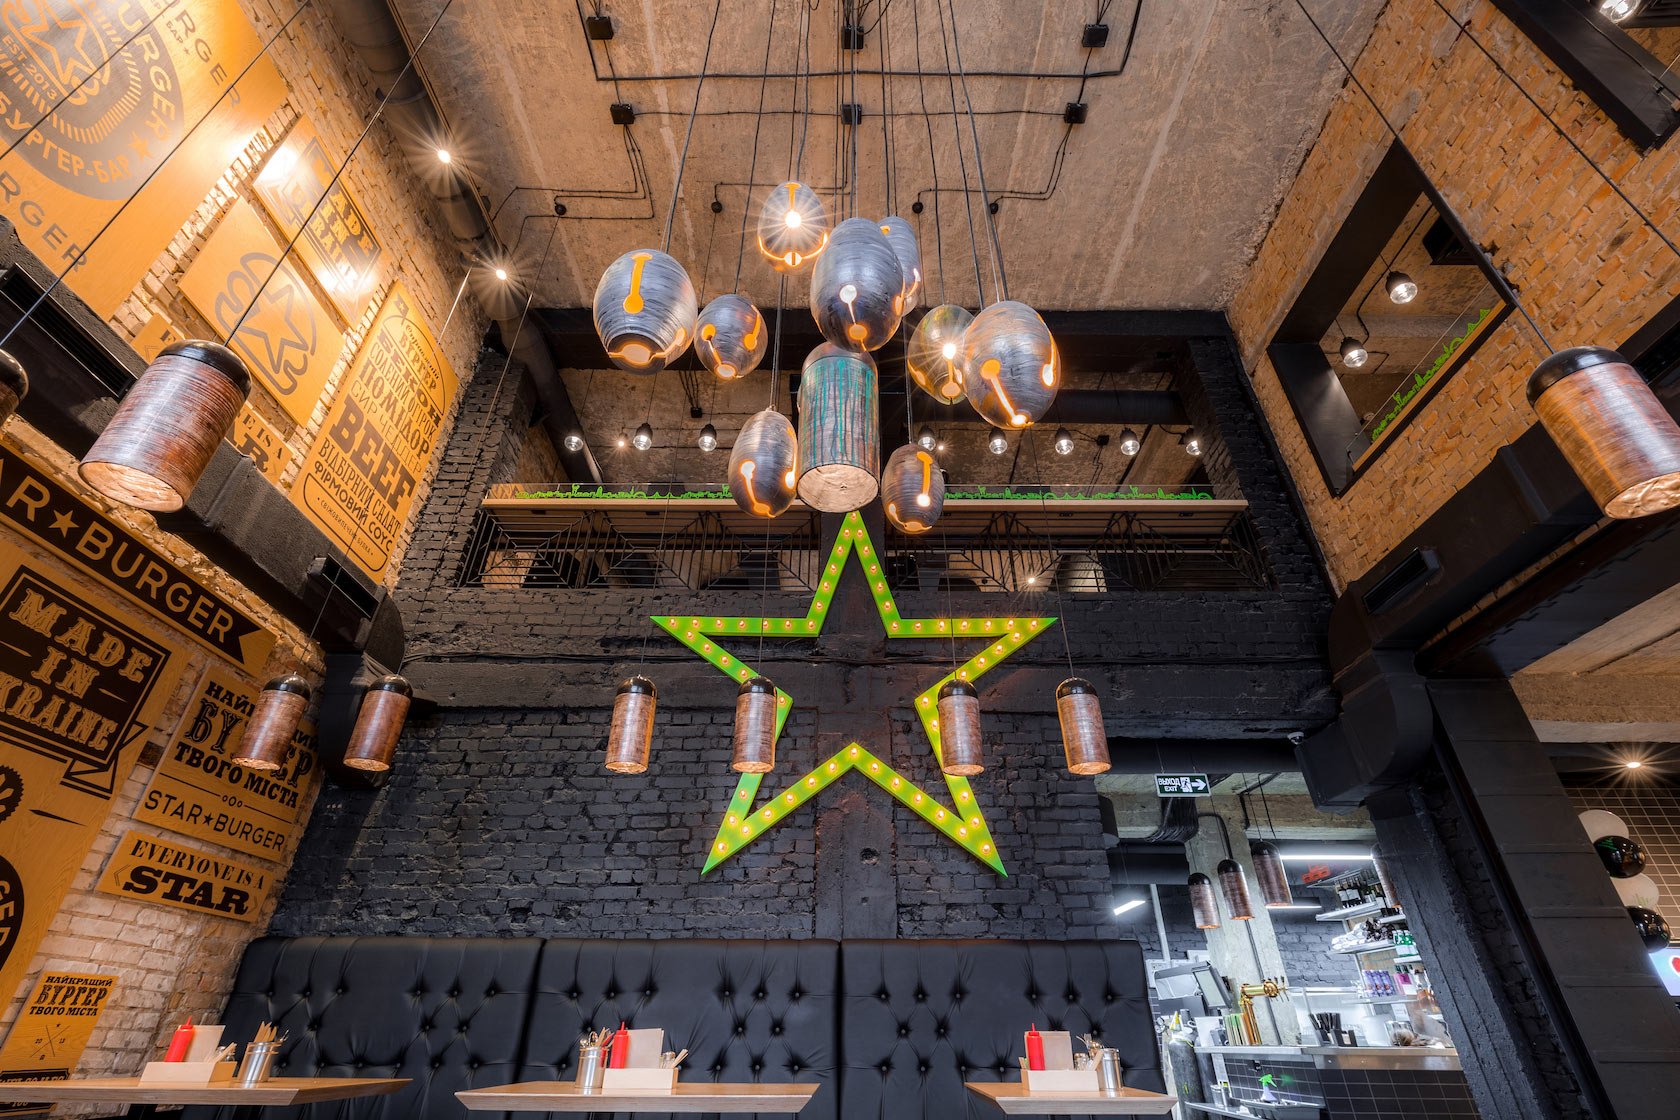 Star burger an industrial restaurant design adorable home for My home interior design